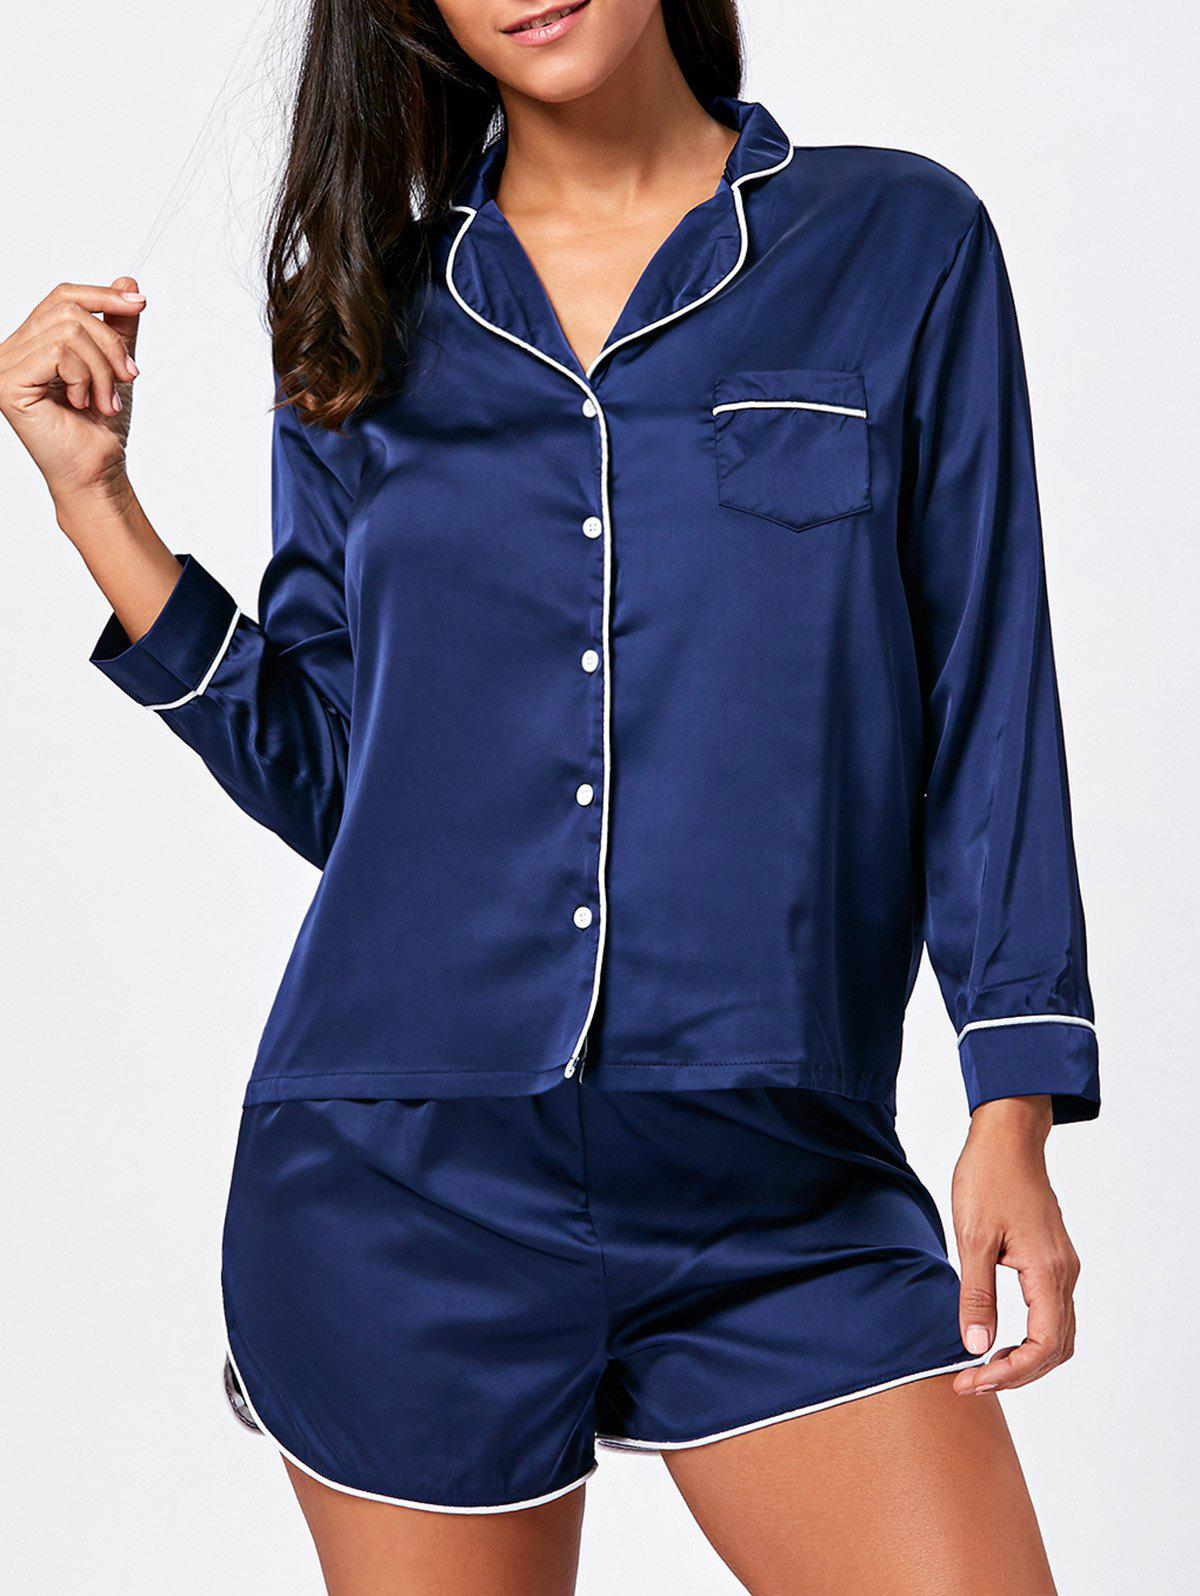 Satin Sleep Shirt with Shorts